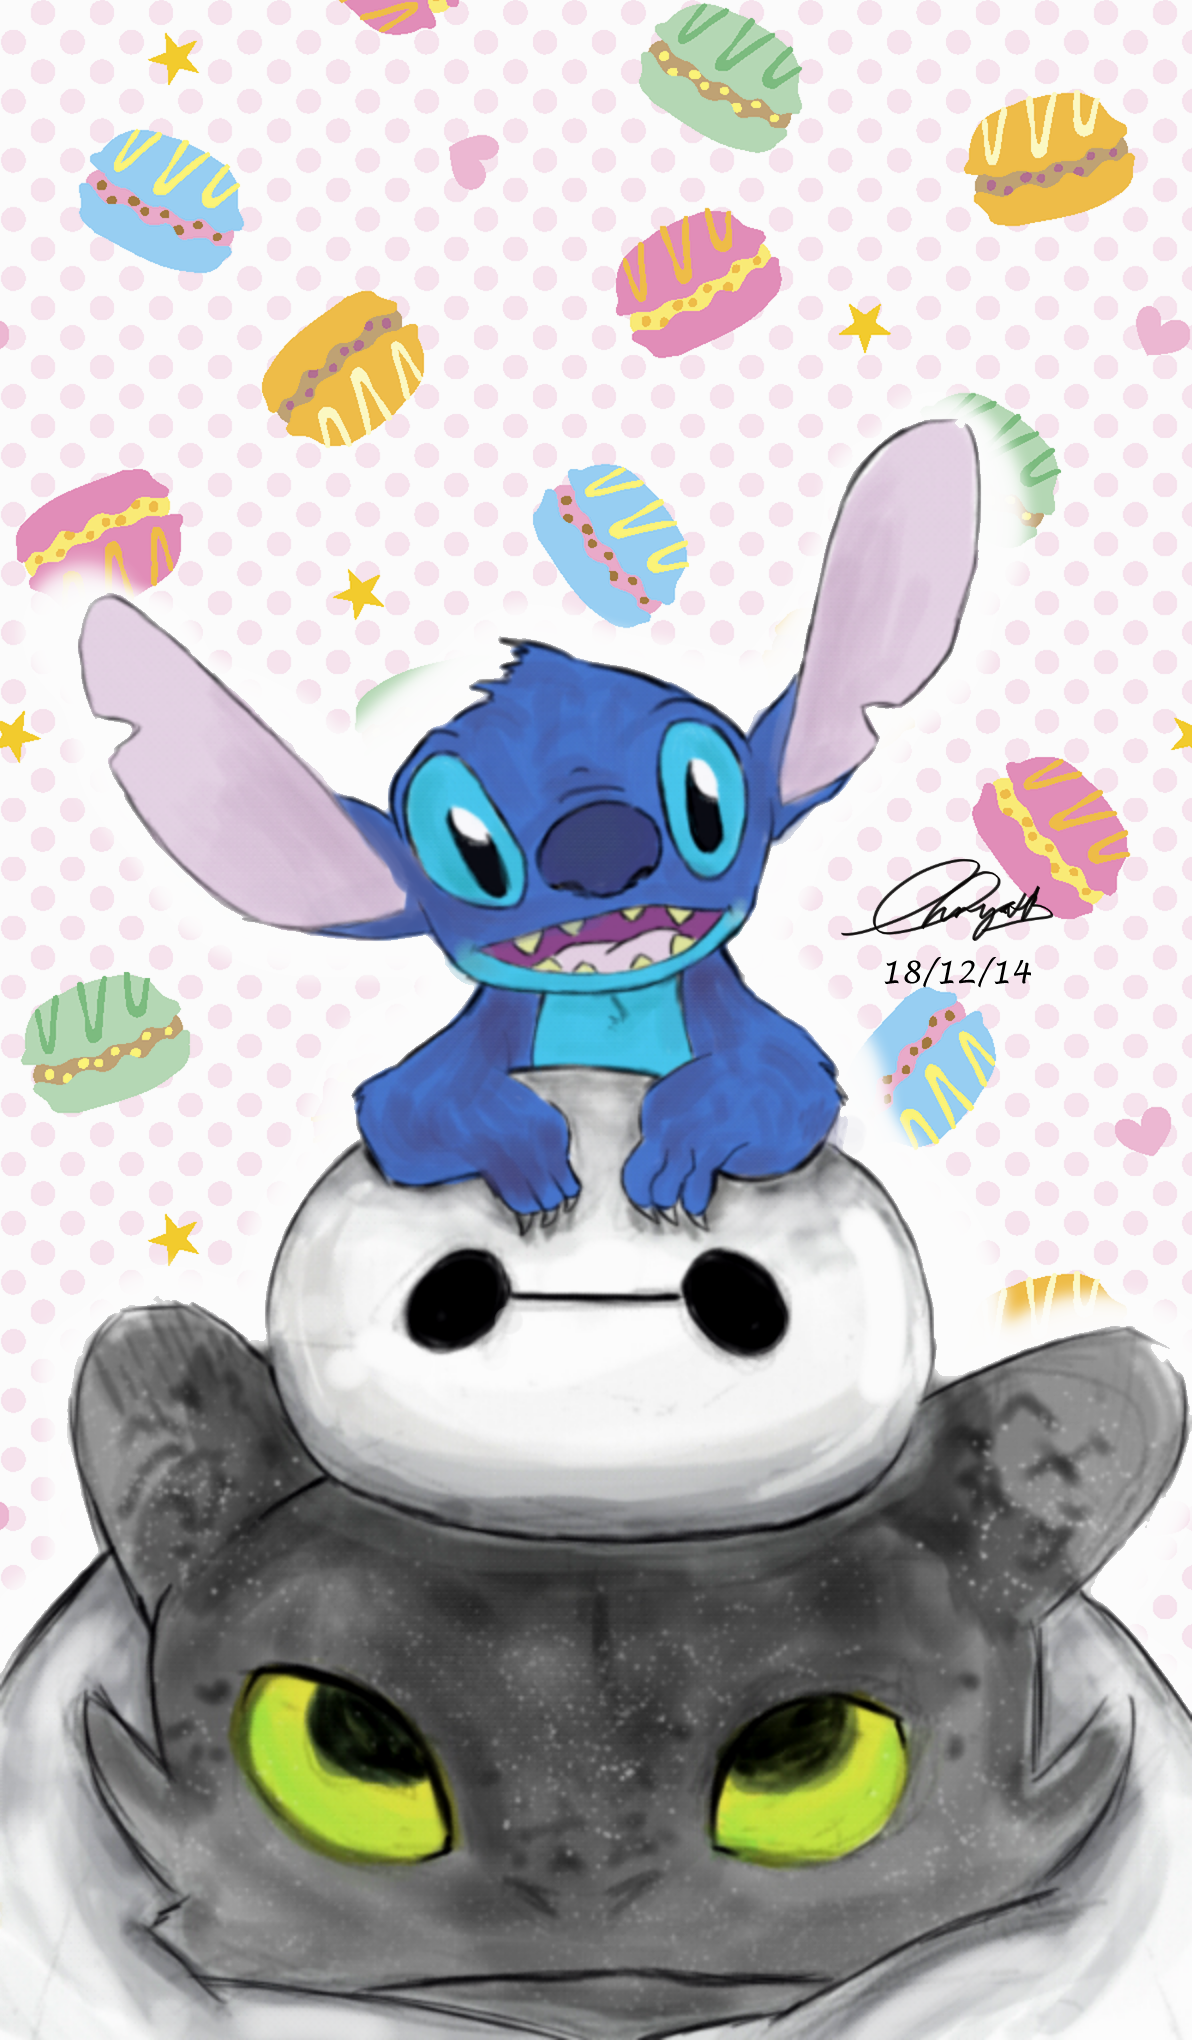 Stitch X Baymax X Toothless By MariaChrystaldeviantartcom On - Baymax imagined famous disney characters